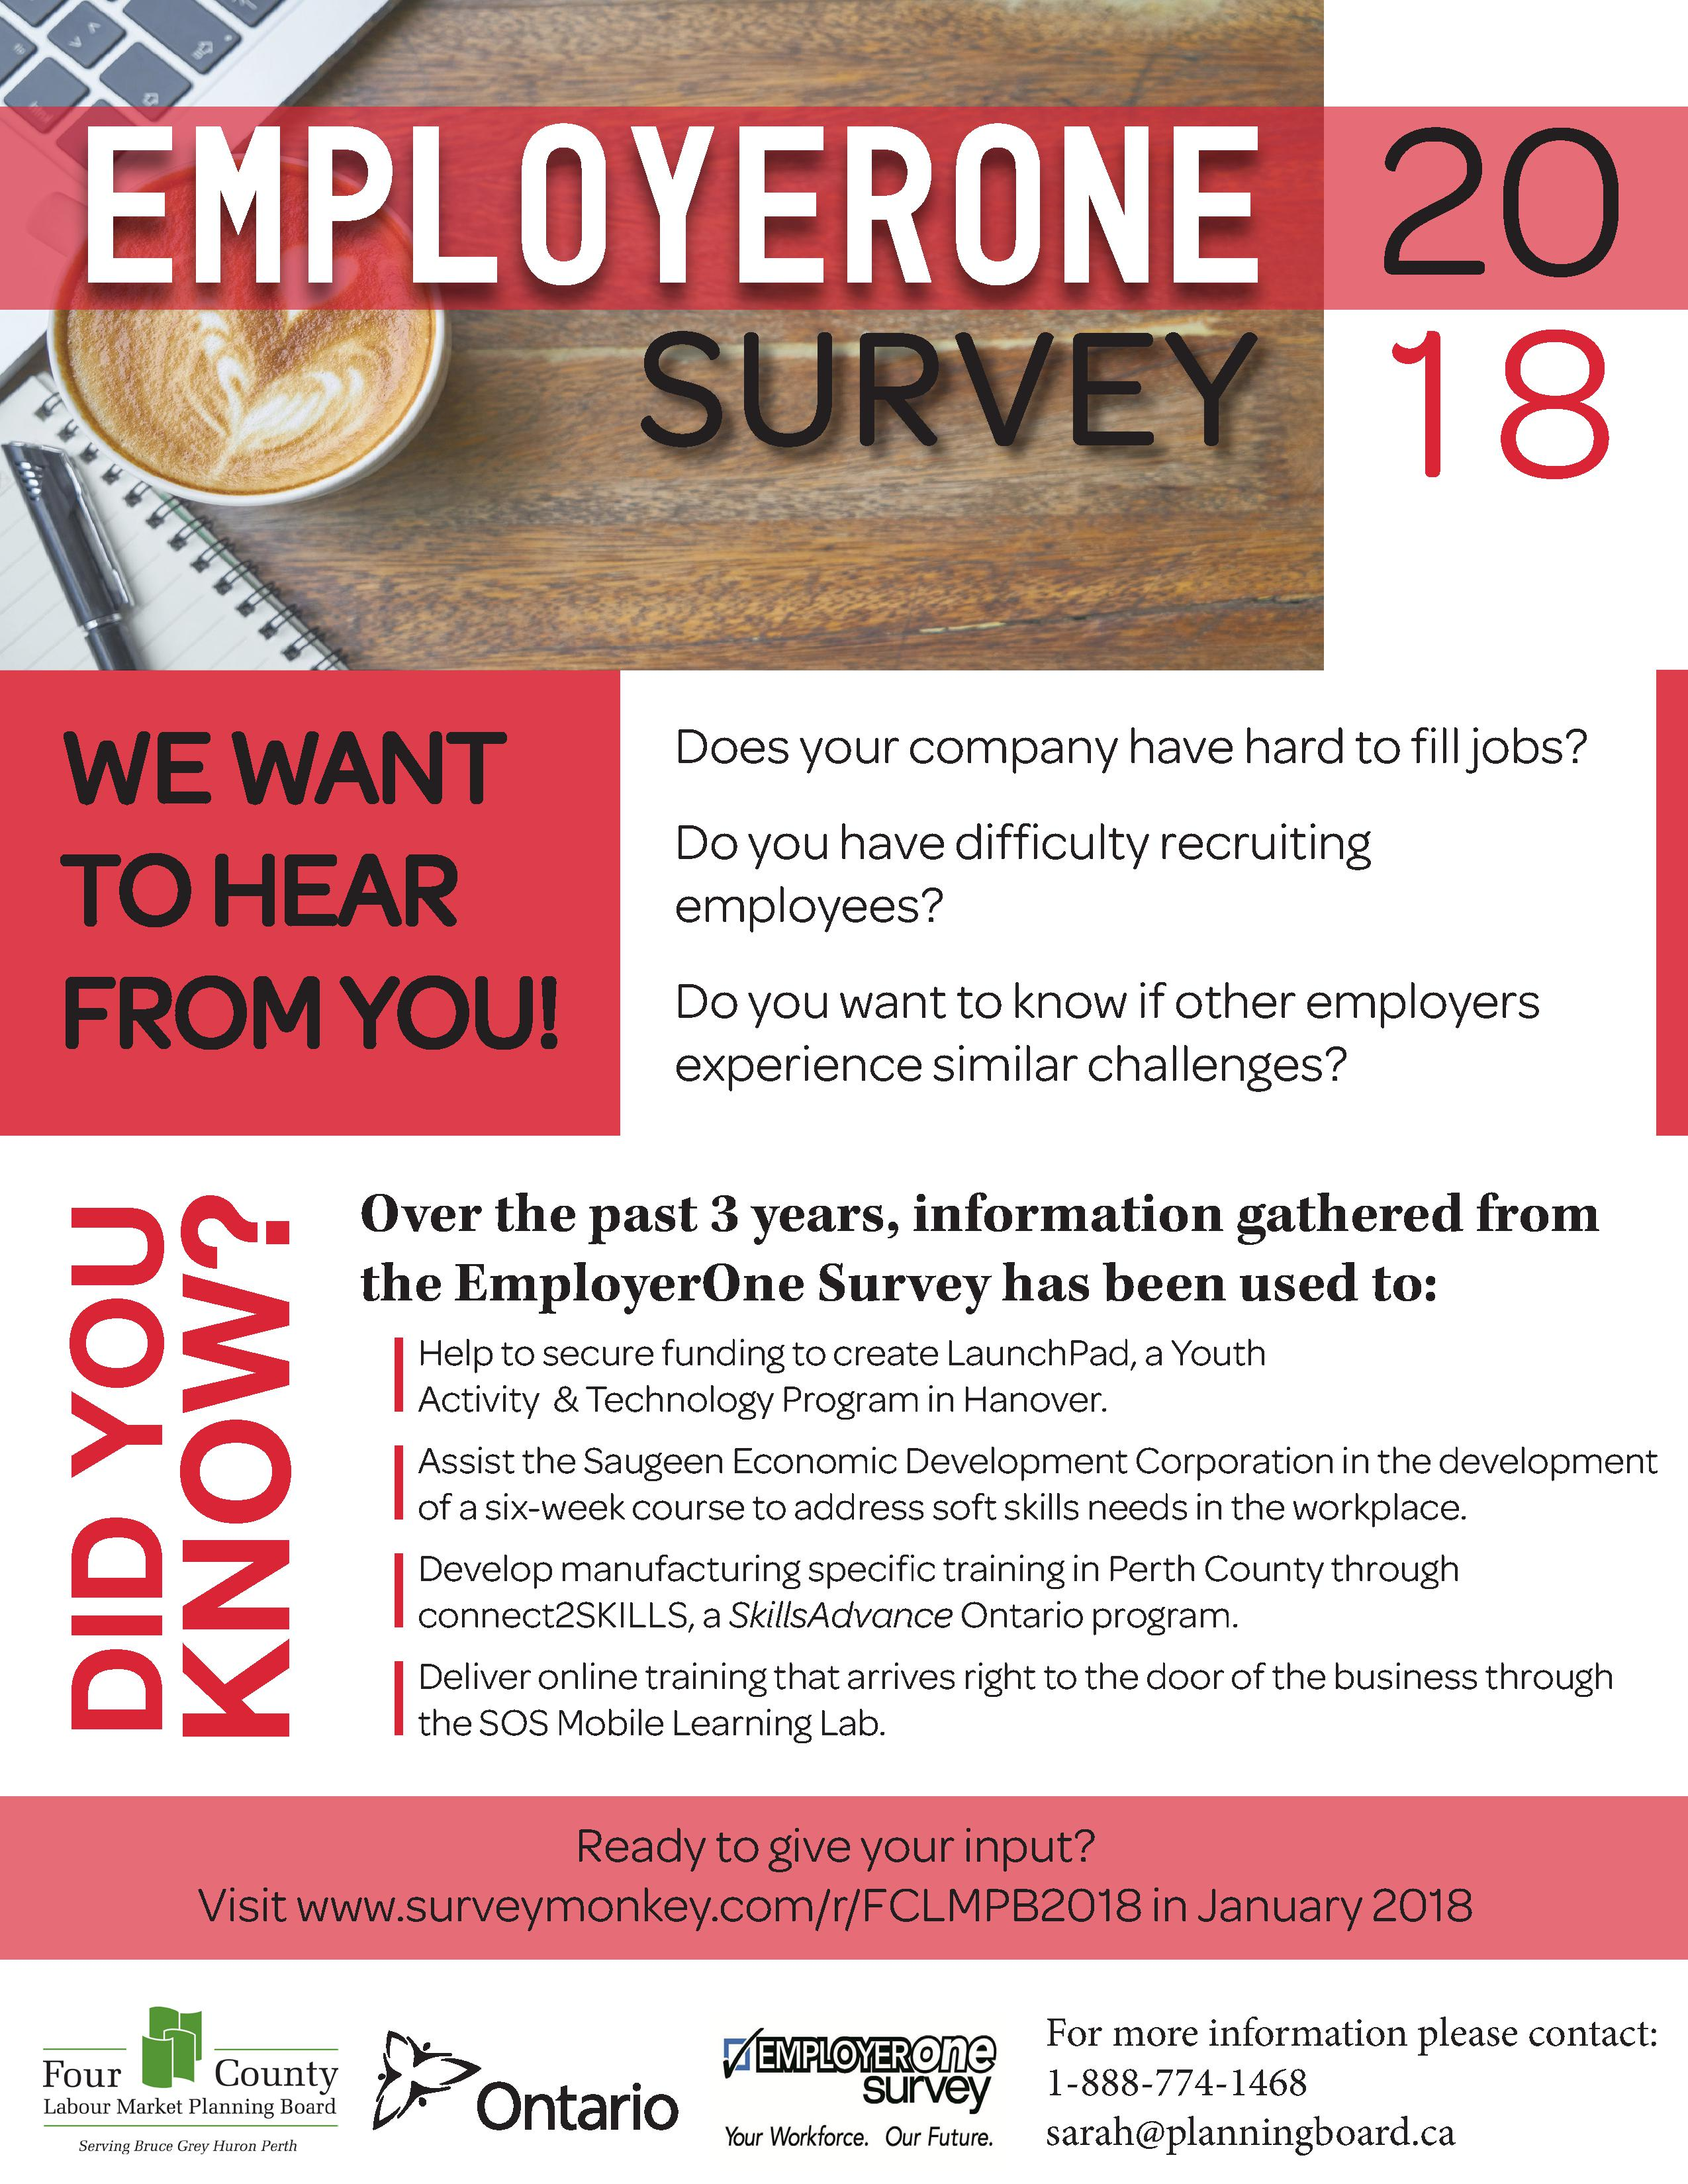 EmployerOne 2018 Survey